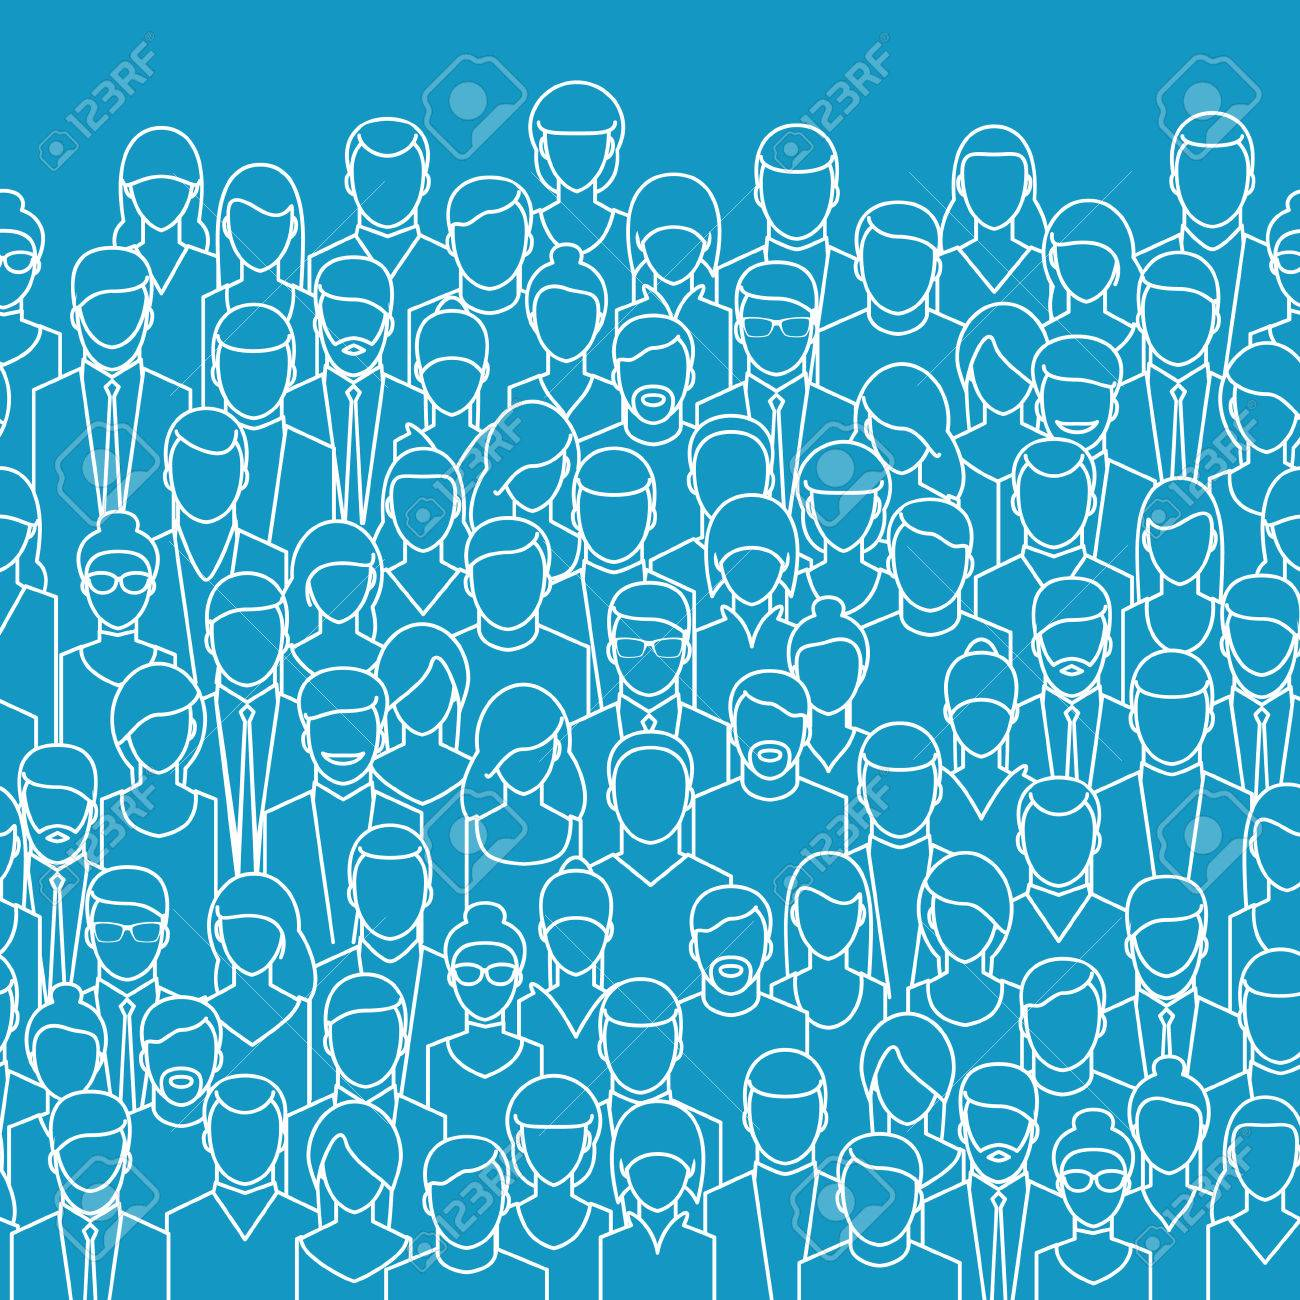 The crowd of abstract people, line style. Flat design, vector illustration. - 53982887